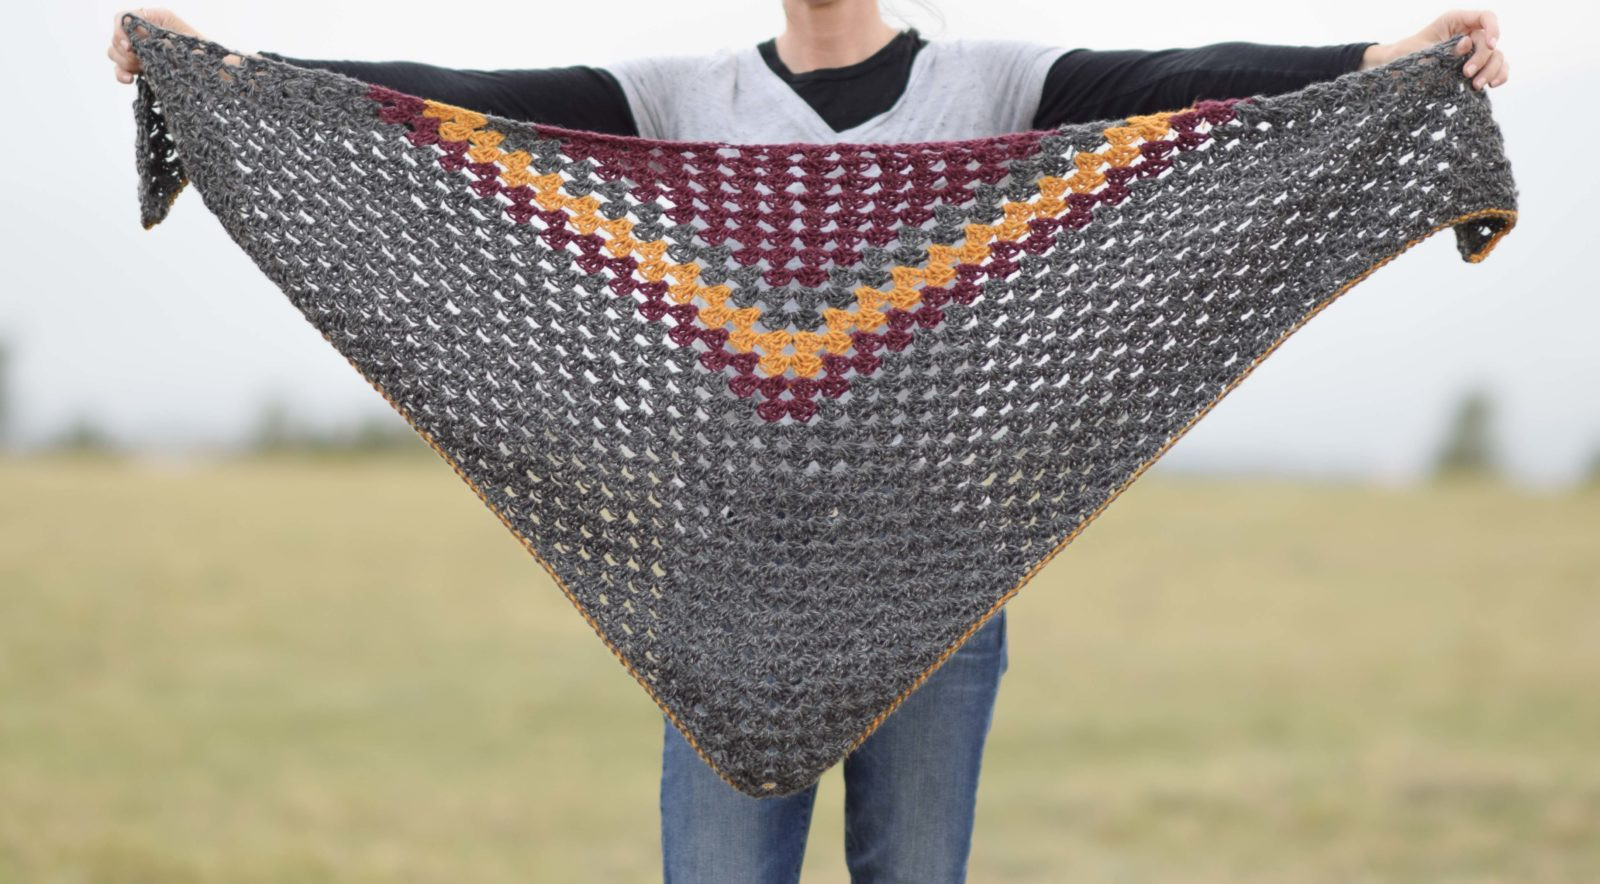 Crochet Wrap Pattern Best Of Smoky Mountains Crochet Triangle Wrap – Mama In A Stitch Of Attractive 42 Pics Crochet Wrap Pattern